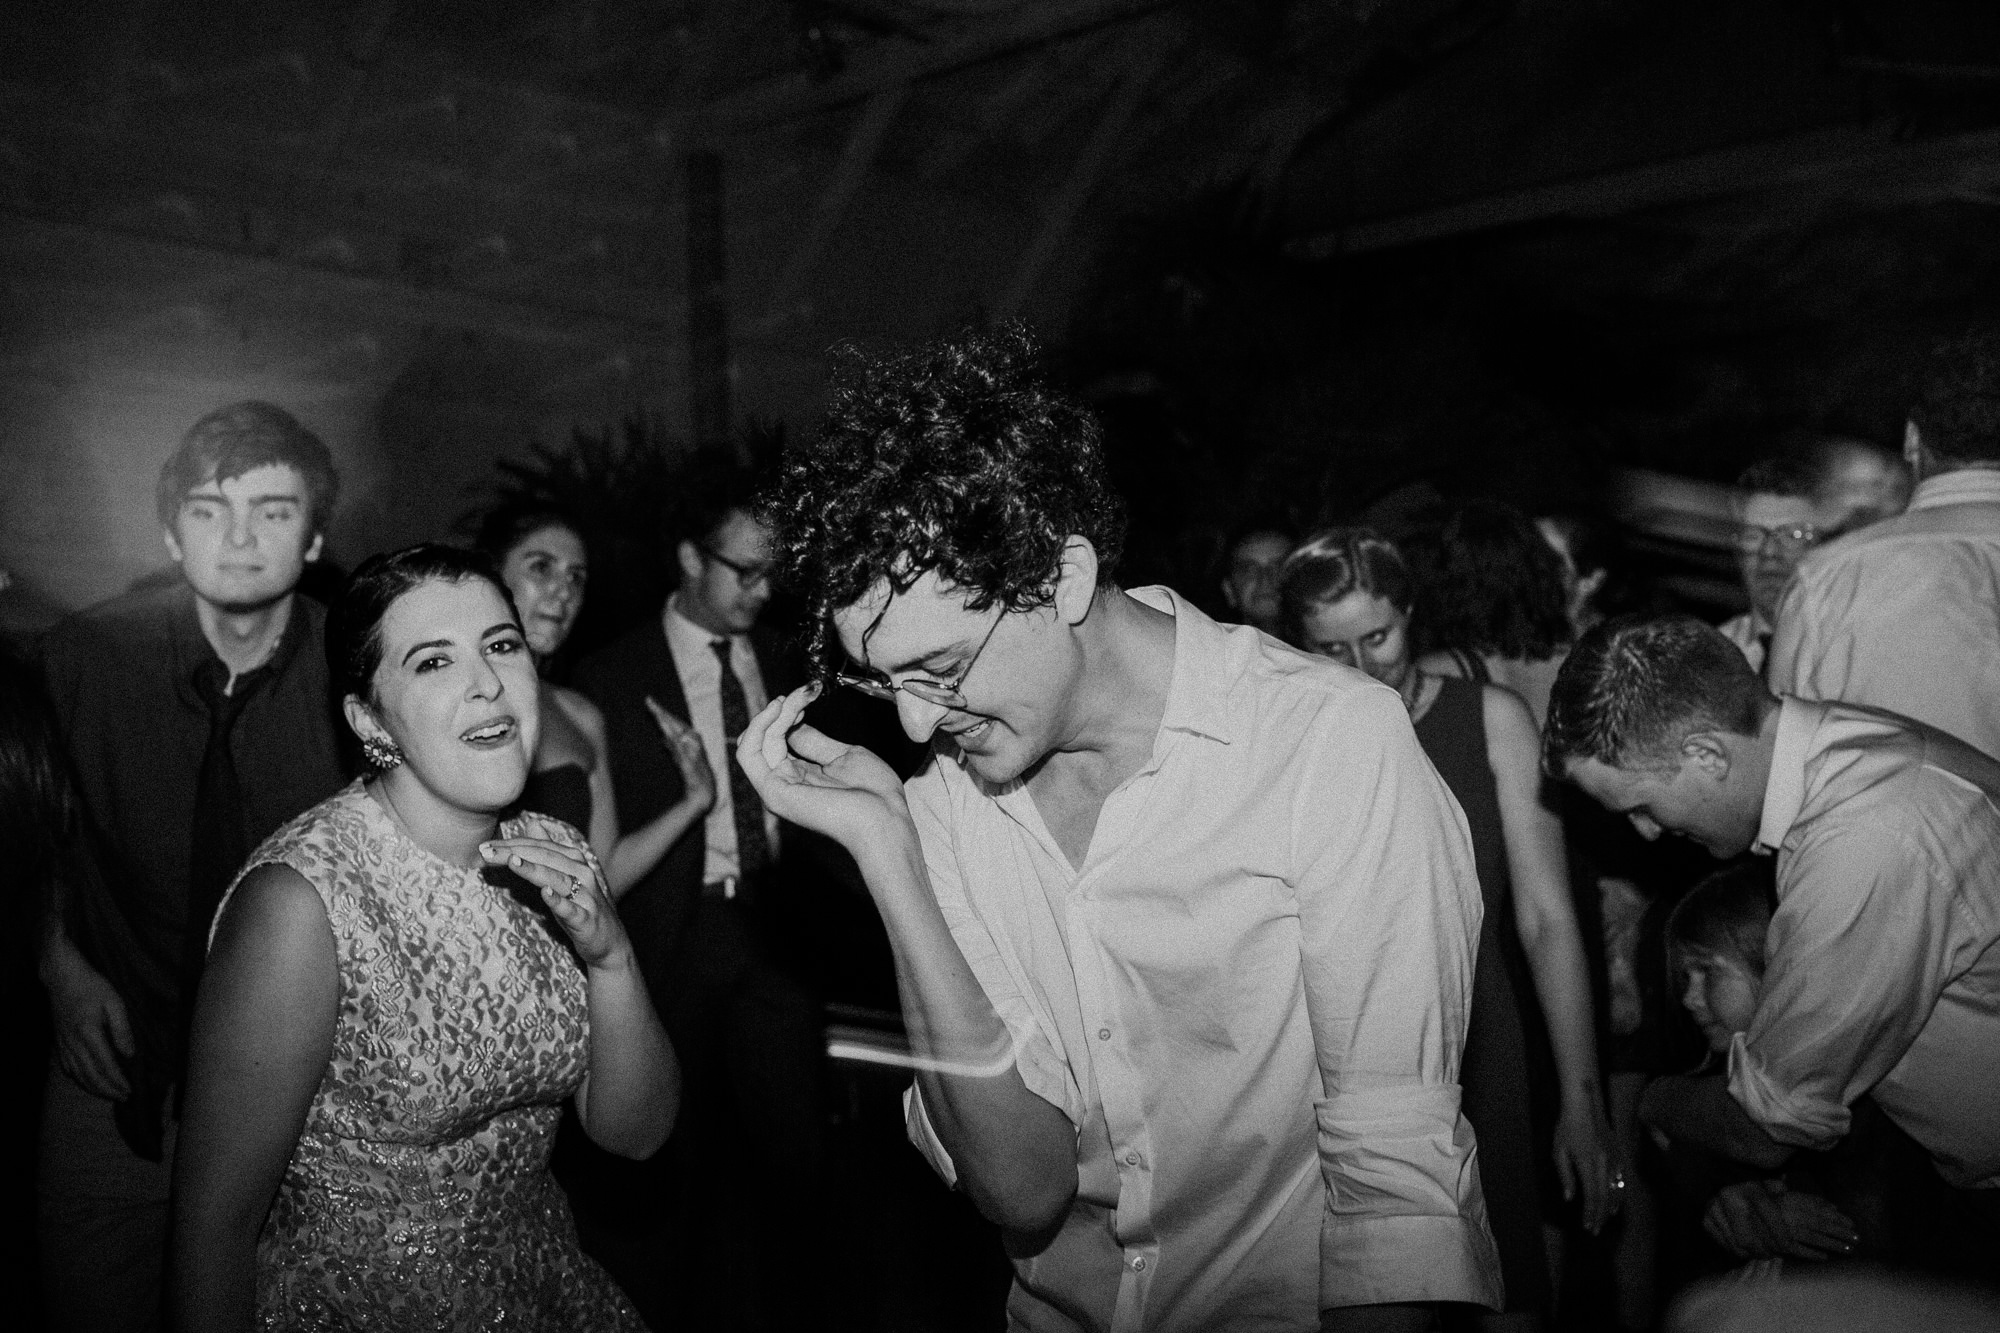 Dancing photo from a wedding in Los Angeles